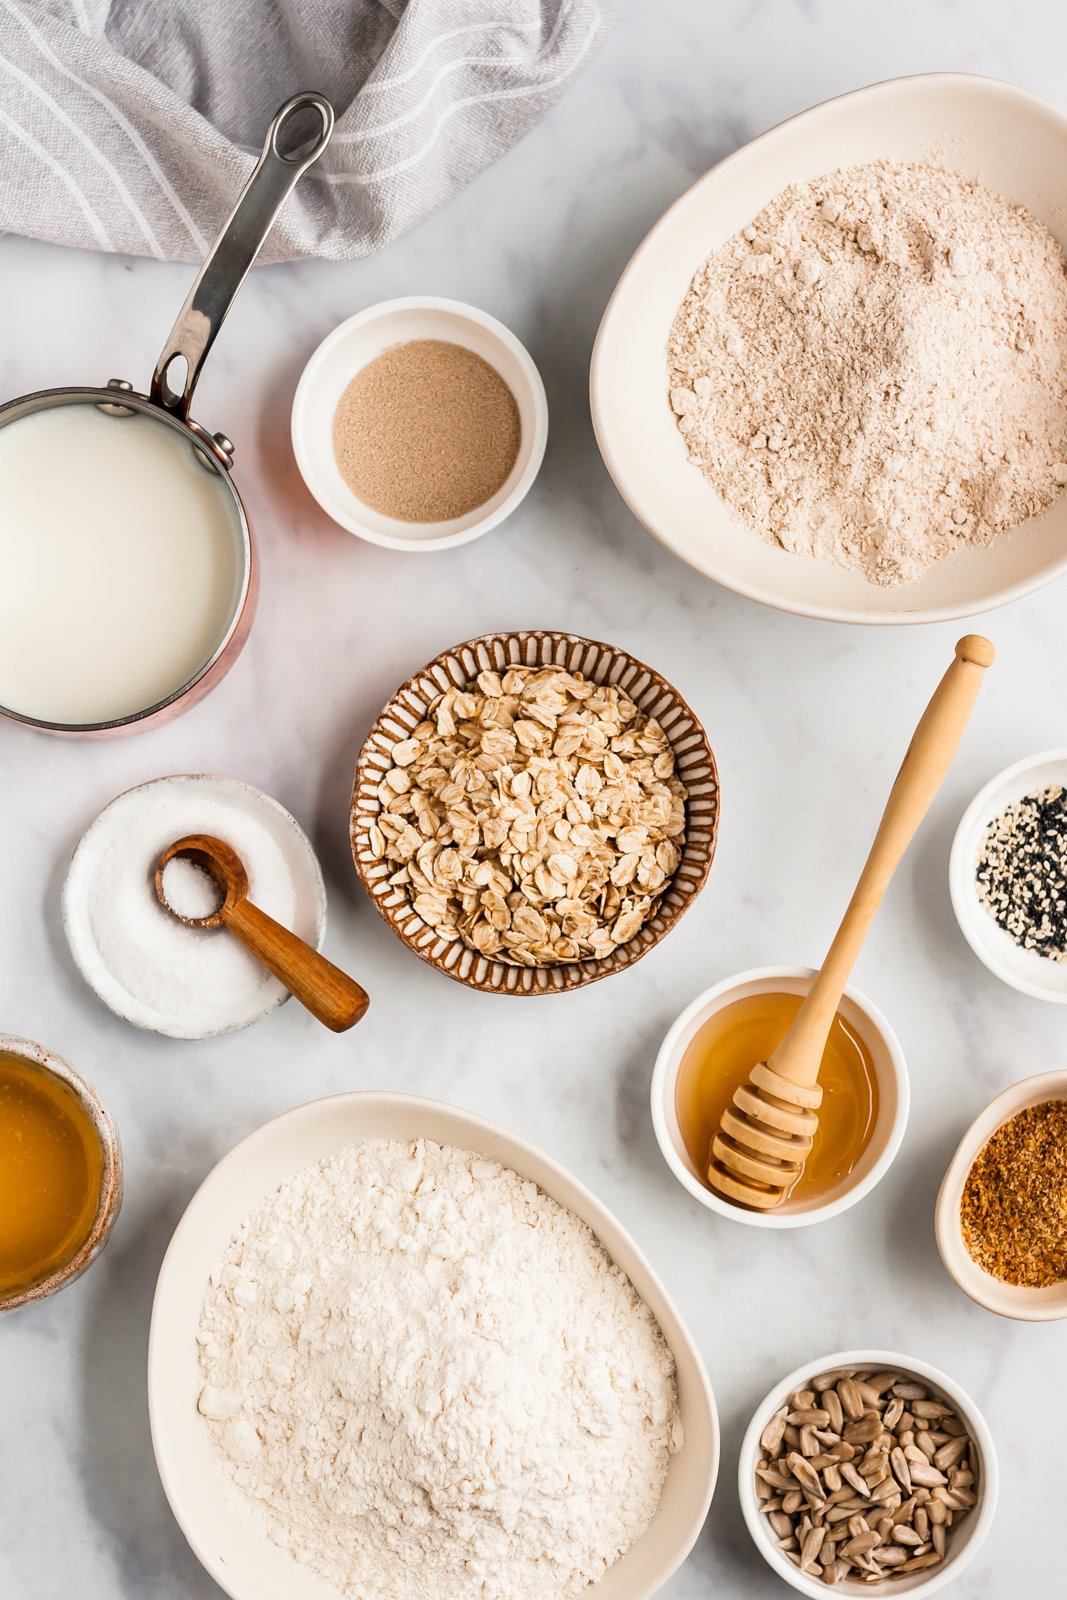 ingredients for homemade healthy sandwich bread on a grey board